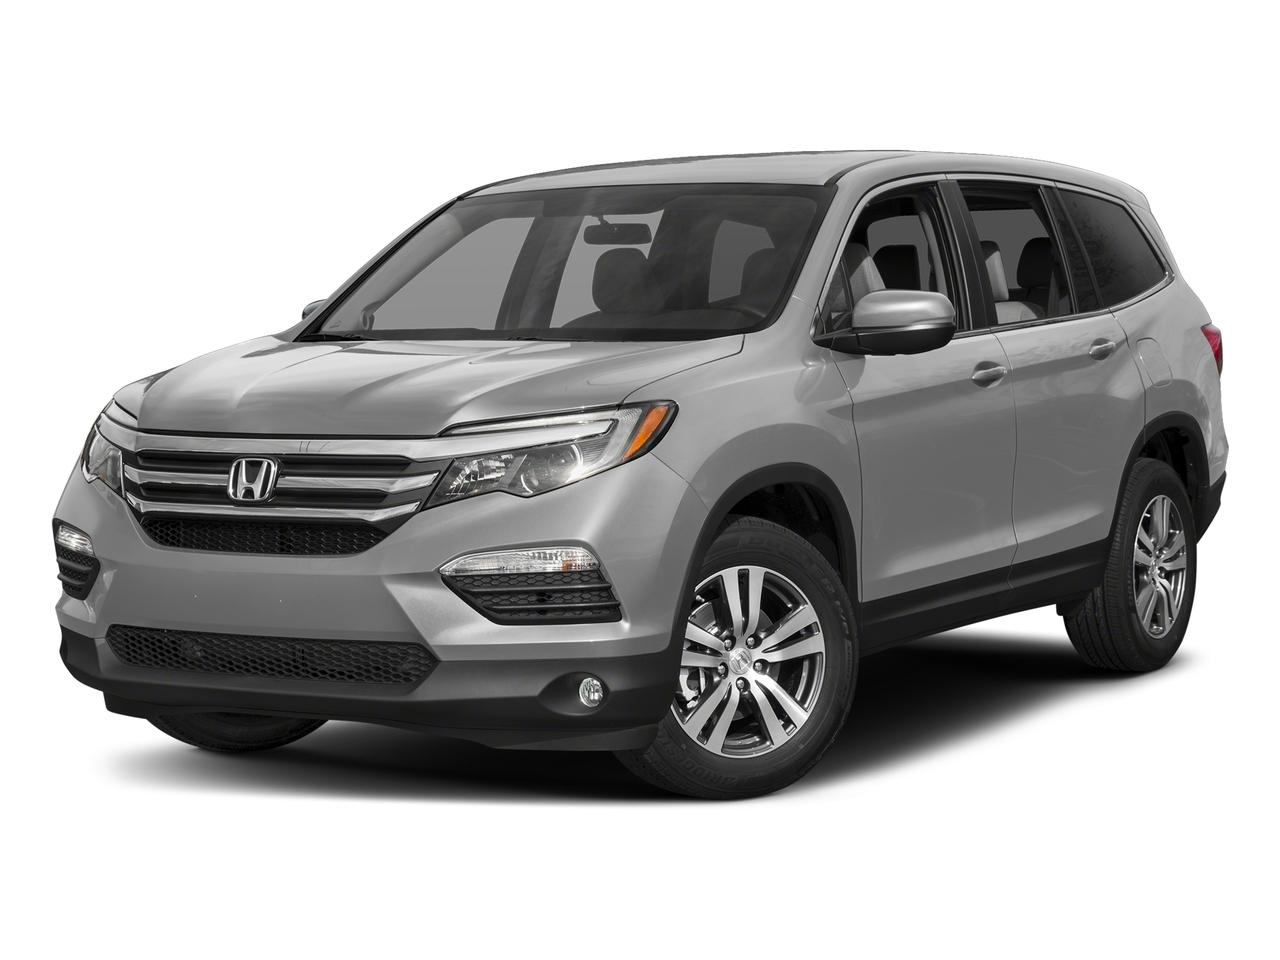 2017 Honda Pilot Vehicle Photo in Beaufort, SC 29906